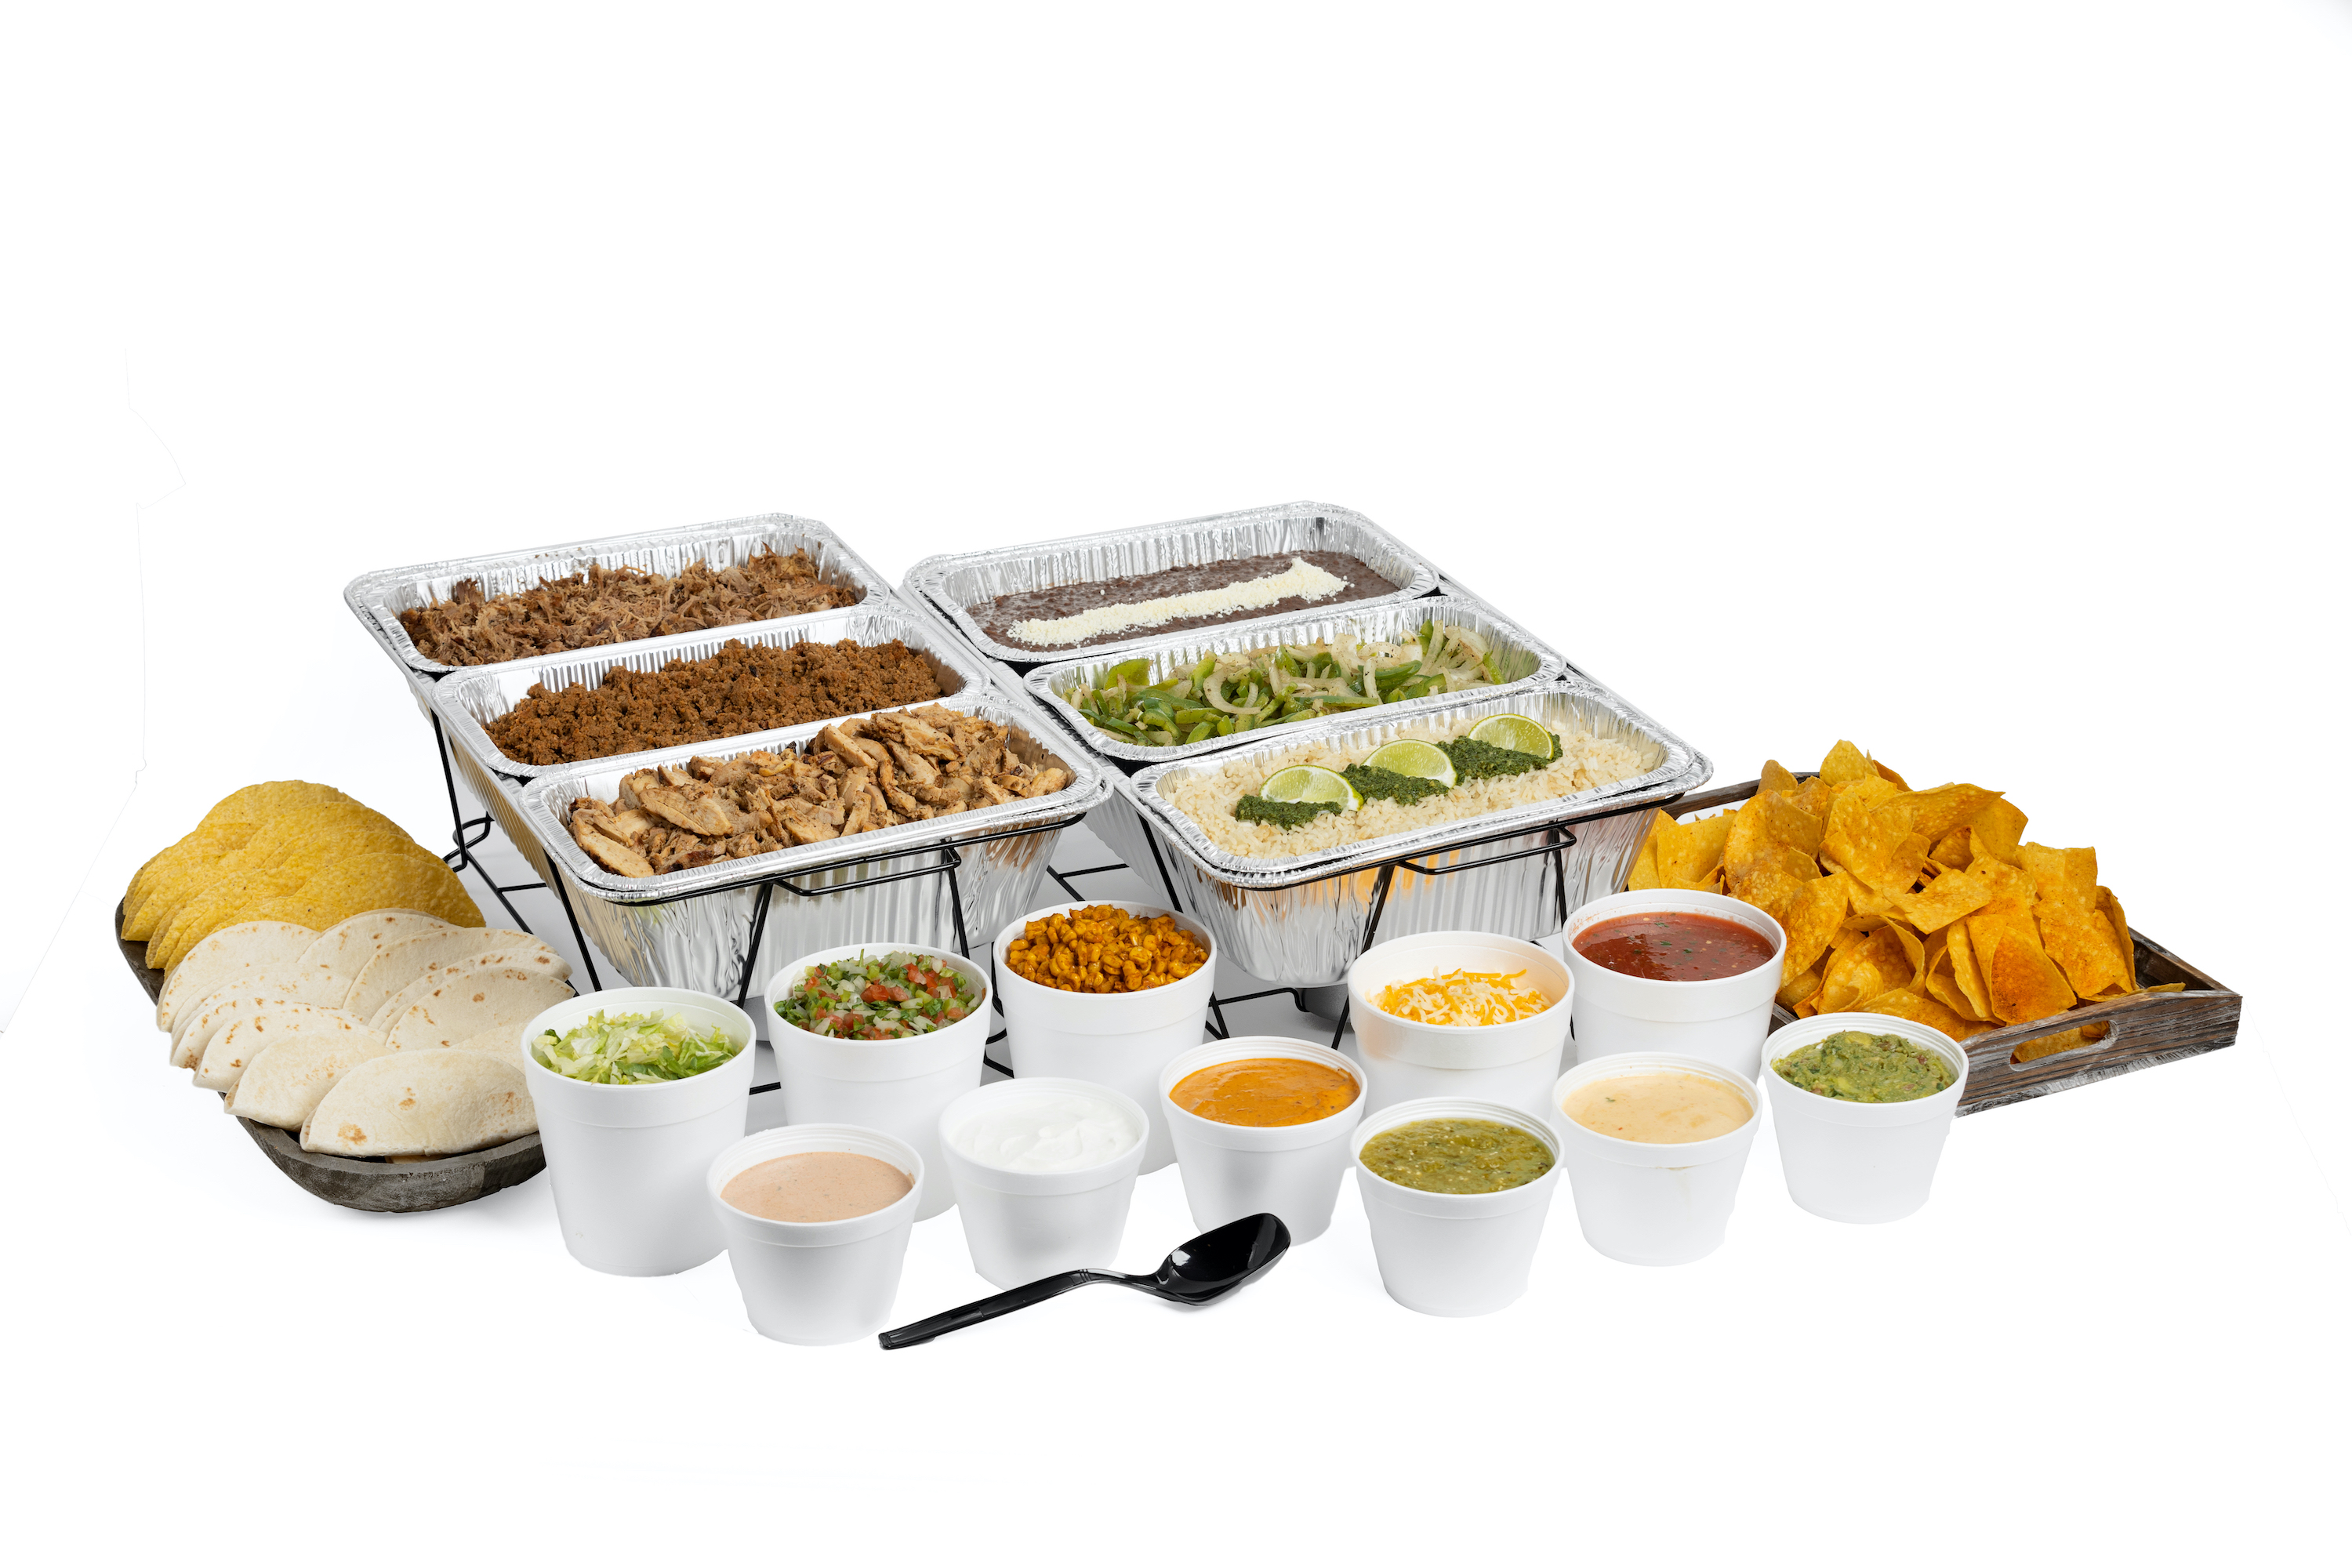 Catering - 3 Meat Taco Bar